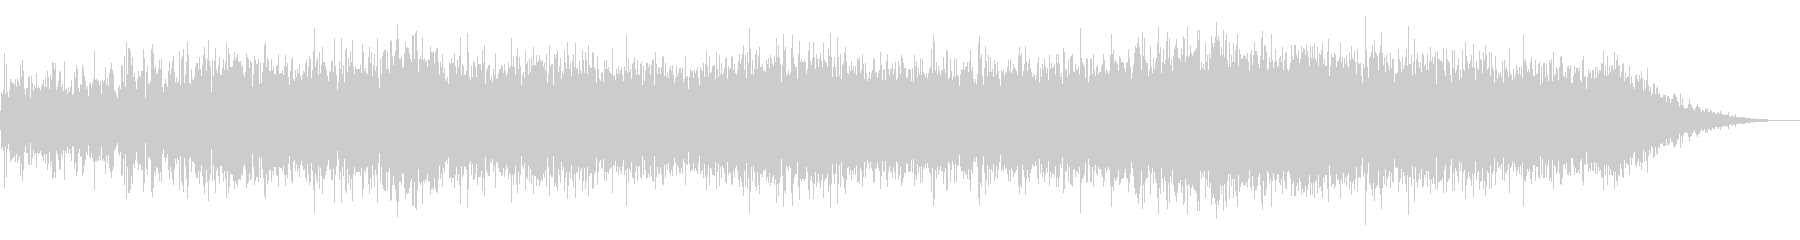 Noise sound source 15 that seems to appear in horror films's unreproduced waveform